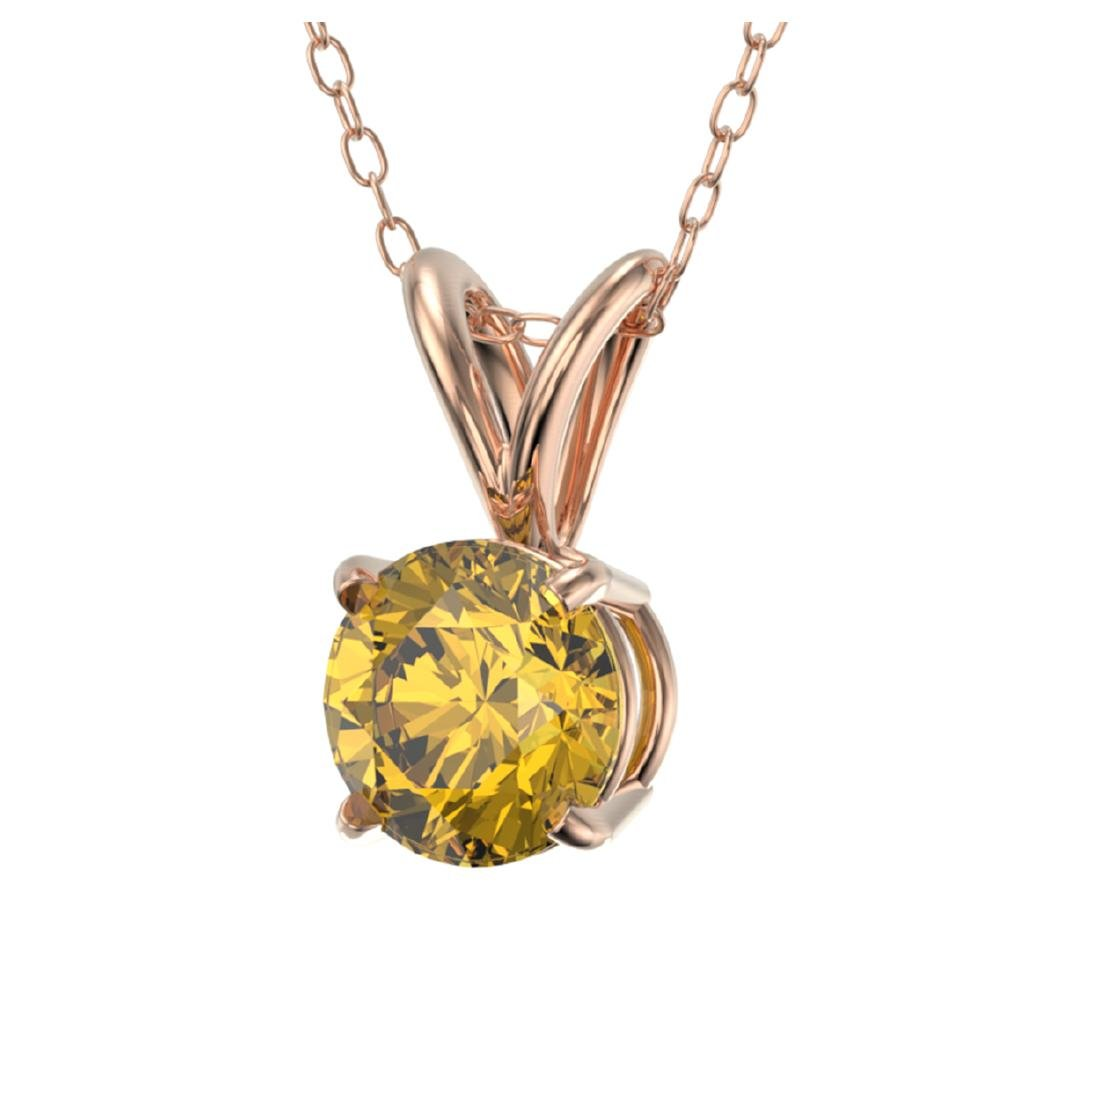 0.53 CTW Intense Yellow SI Diamond Solitaire Necklace - 2